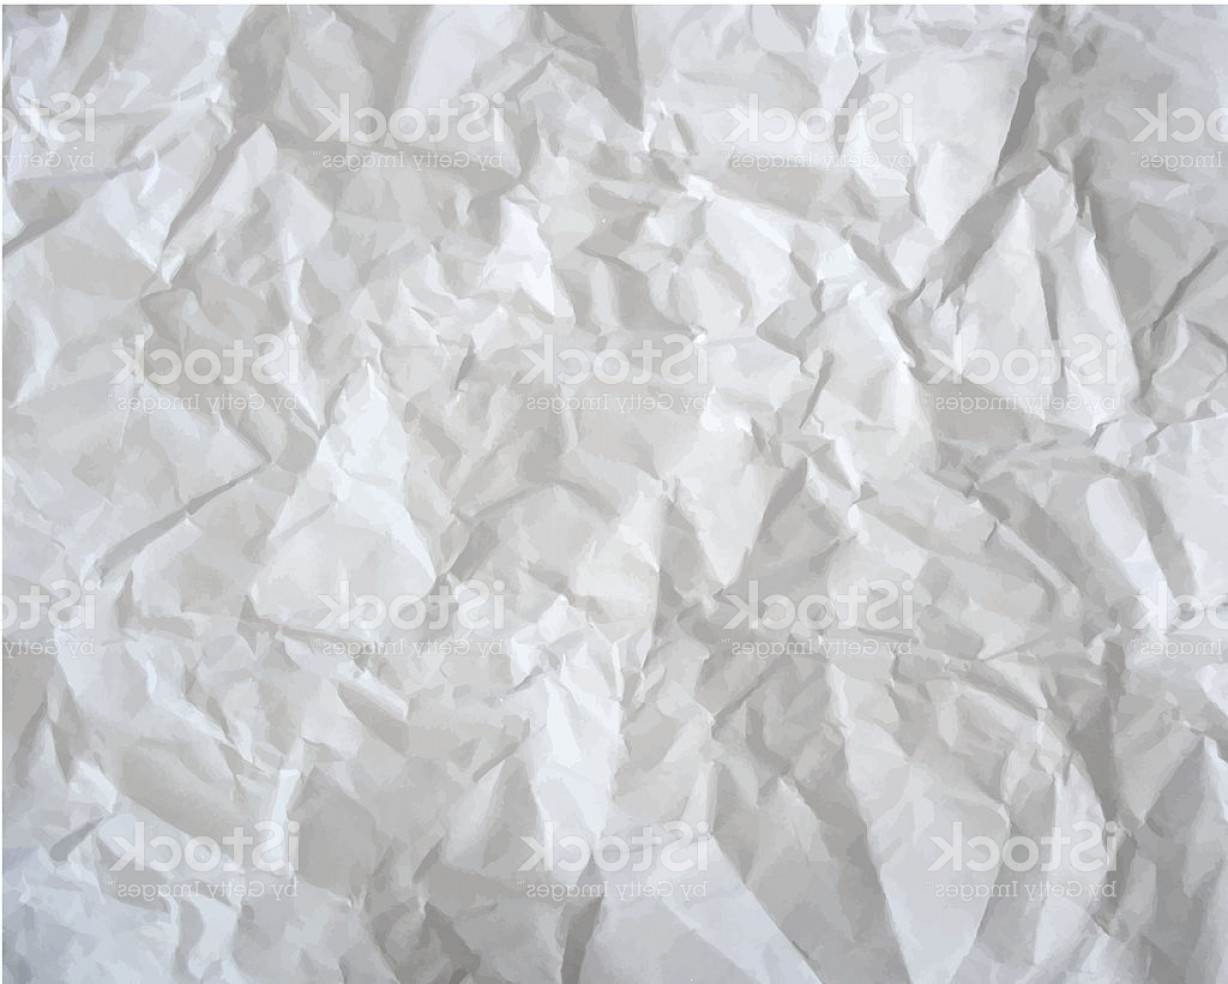 Crinkled Paper Vector: Texture Of Crumpled Paper Vector Illustration Gm